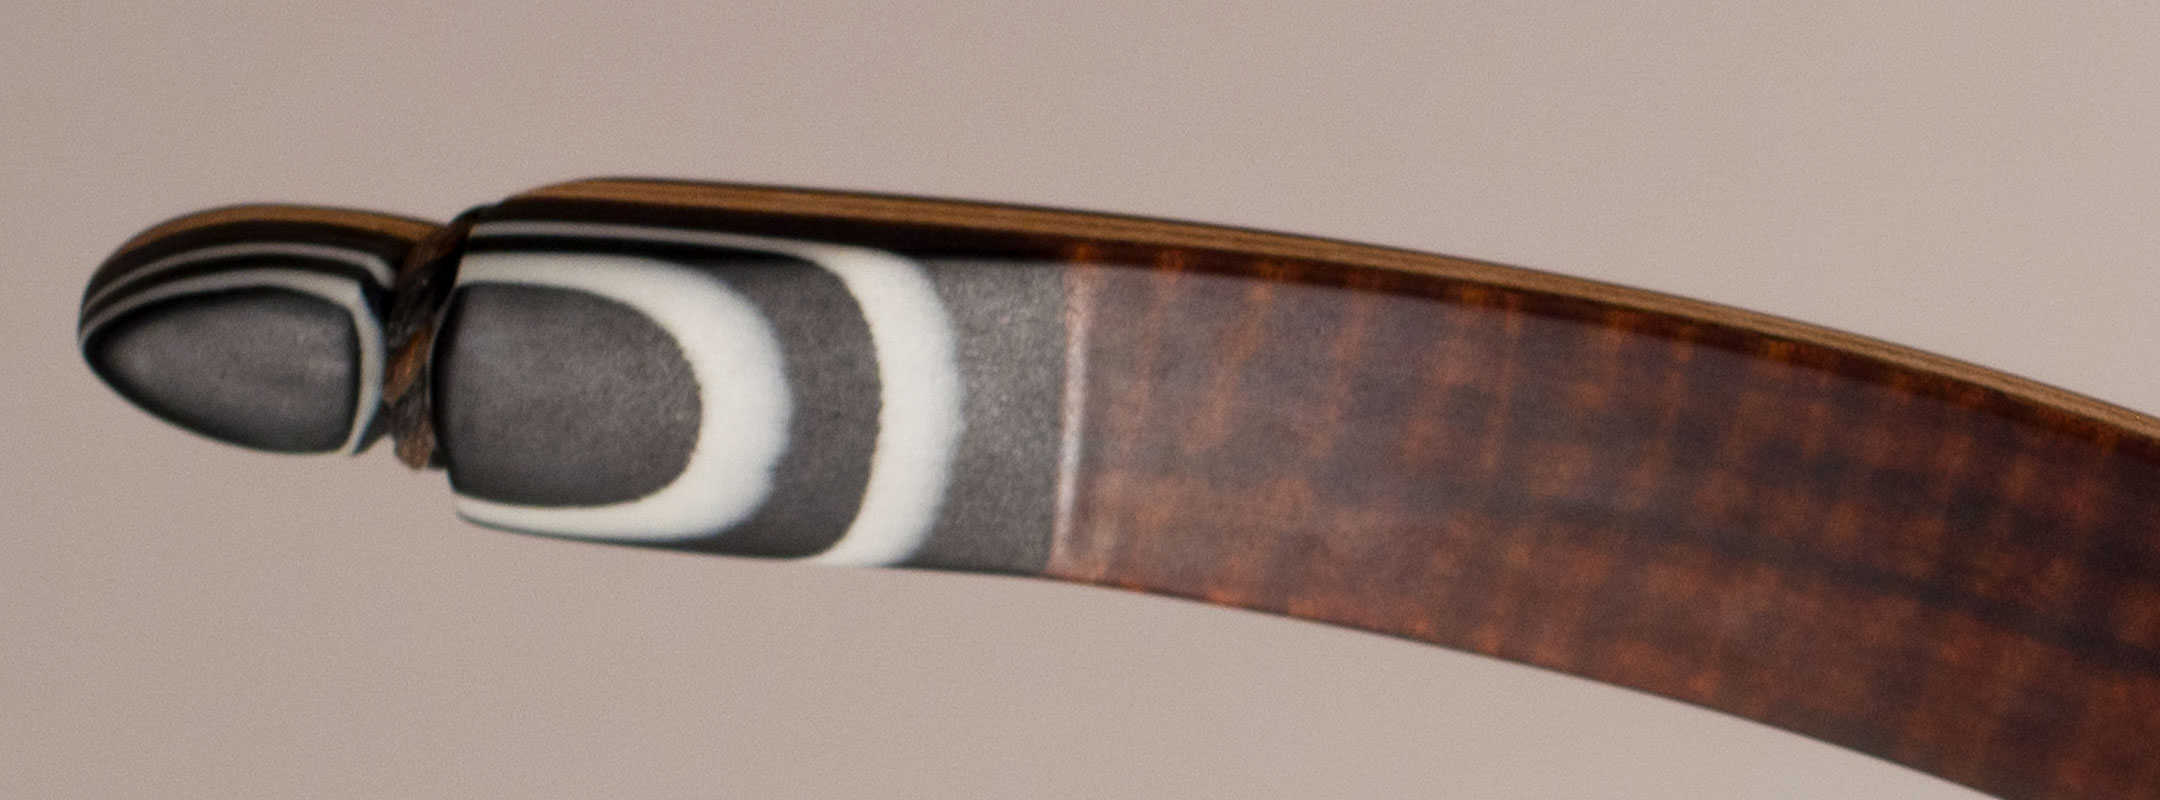 Longbow limb tip in white and black with bow string groove